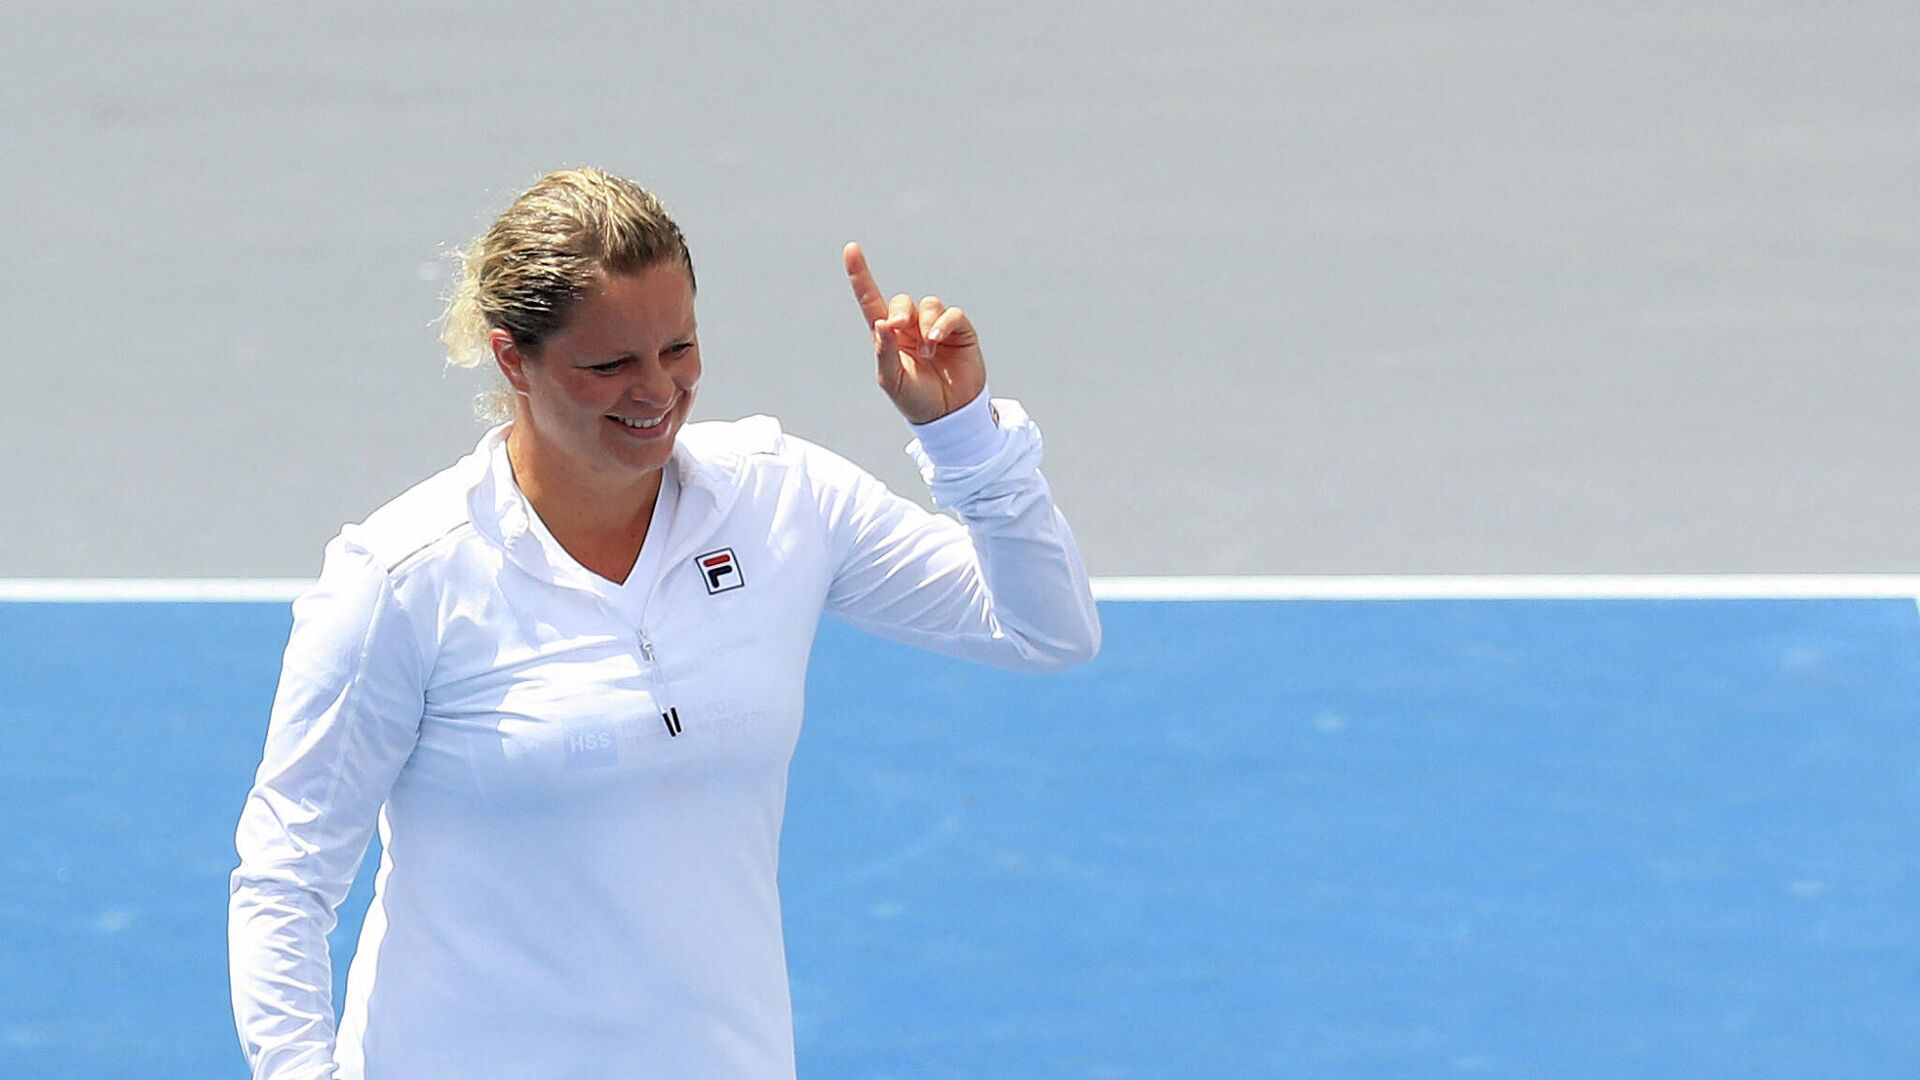 WHITE SULPHUR SPRINGS, WEST VIRGINIA - AUGUST 02: Kim Clijsters of the New York Empire reacts during the finals of the World TeamTennis at The Greenbrier on August 02, 2020 in White Sulphur Springs, West Virginia.   Streeter Lecka/Getty Images/AFP (Photo by STREETER LECKA / GETTY IMAGES NORTH AMERICA / Getty Images via AFP) - РИА Новости, 1920, 04.03.2021